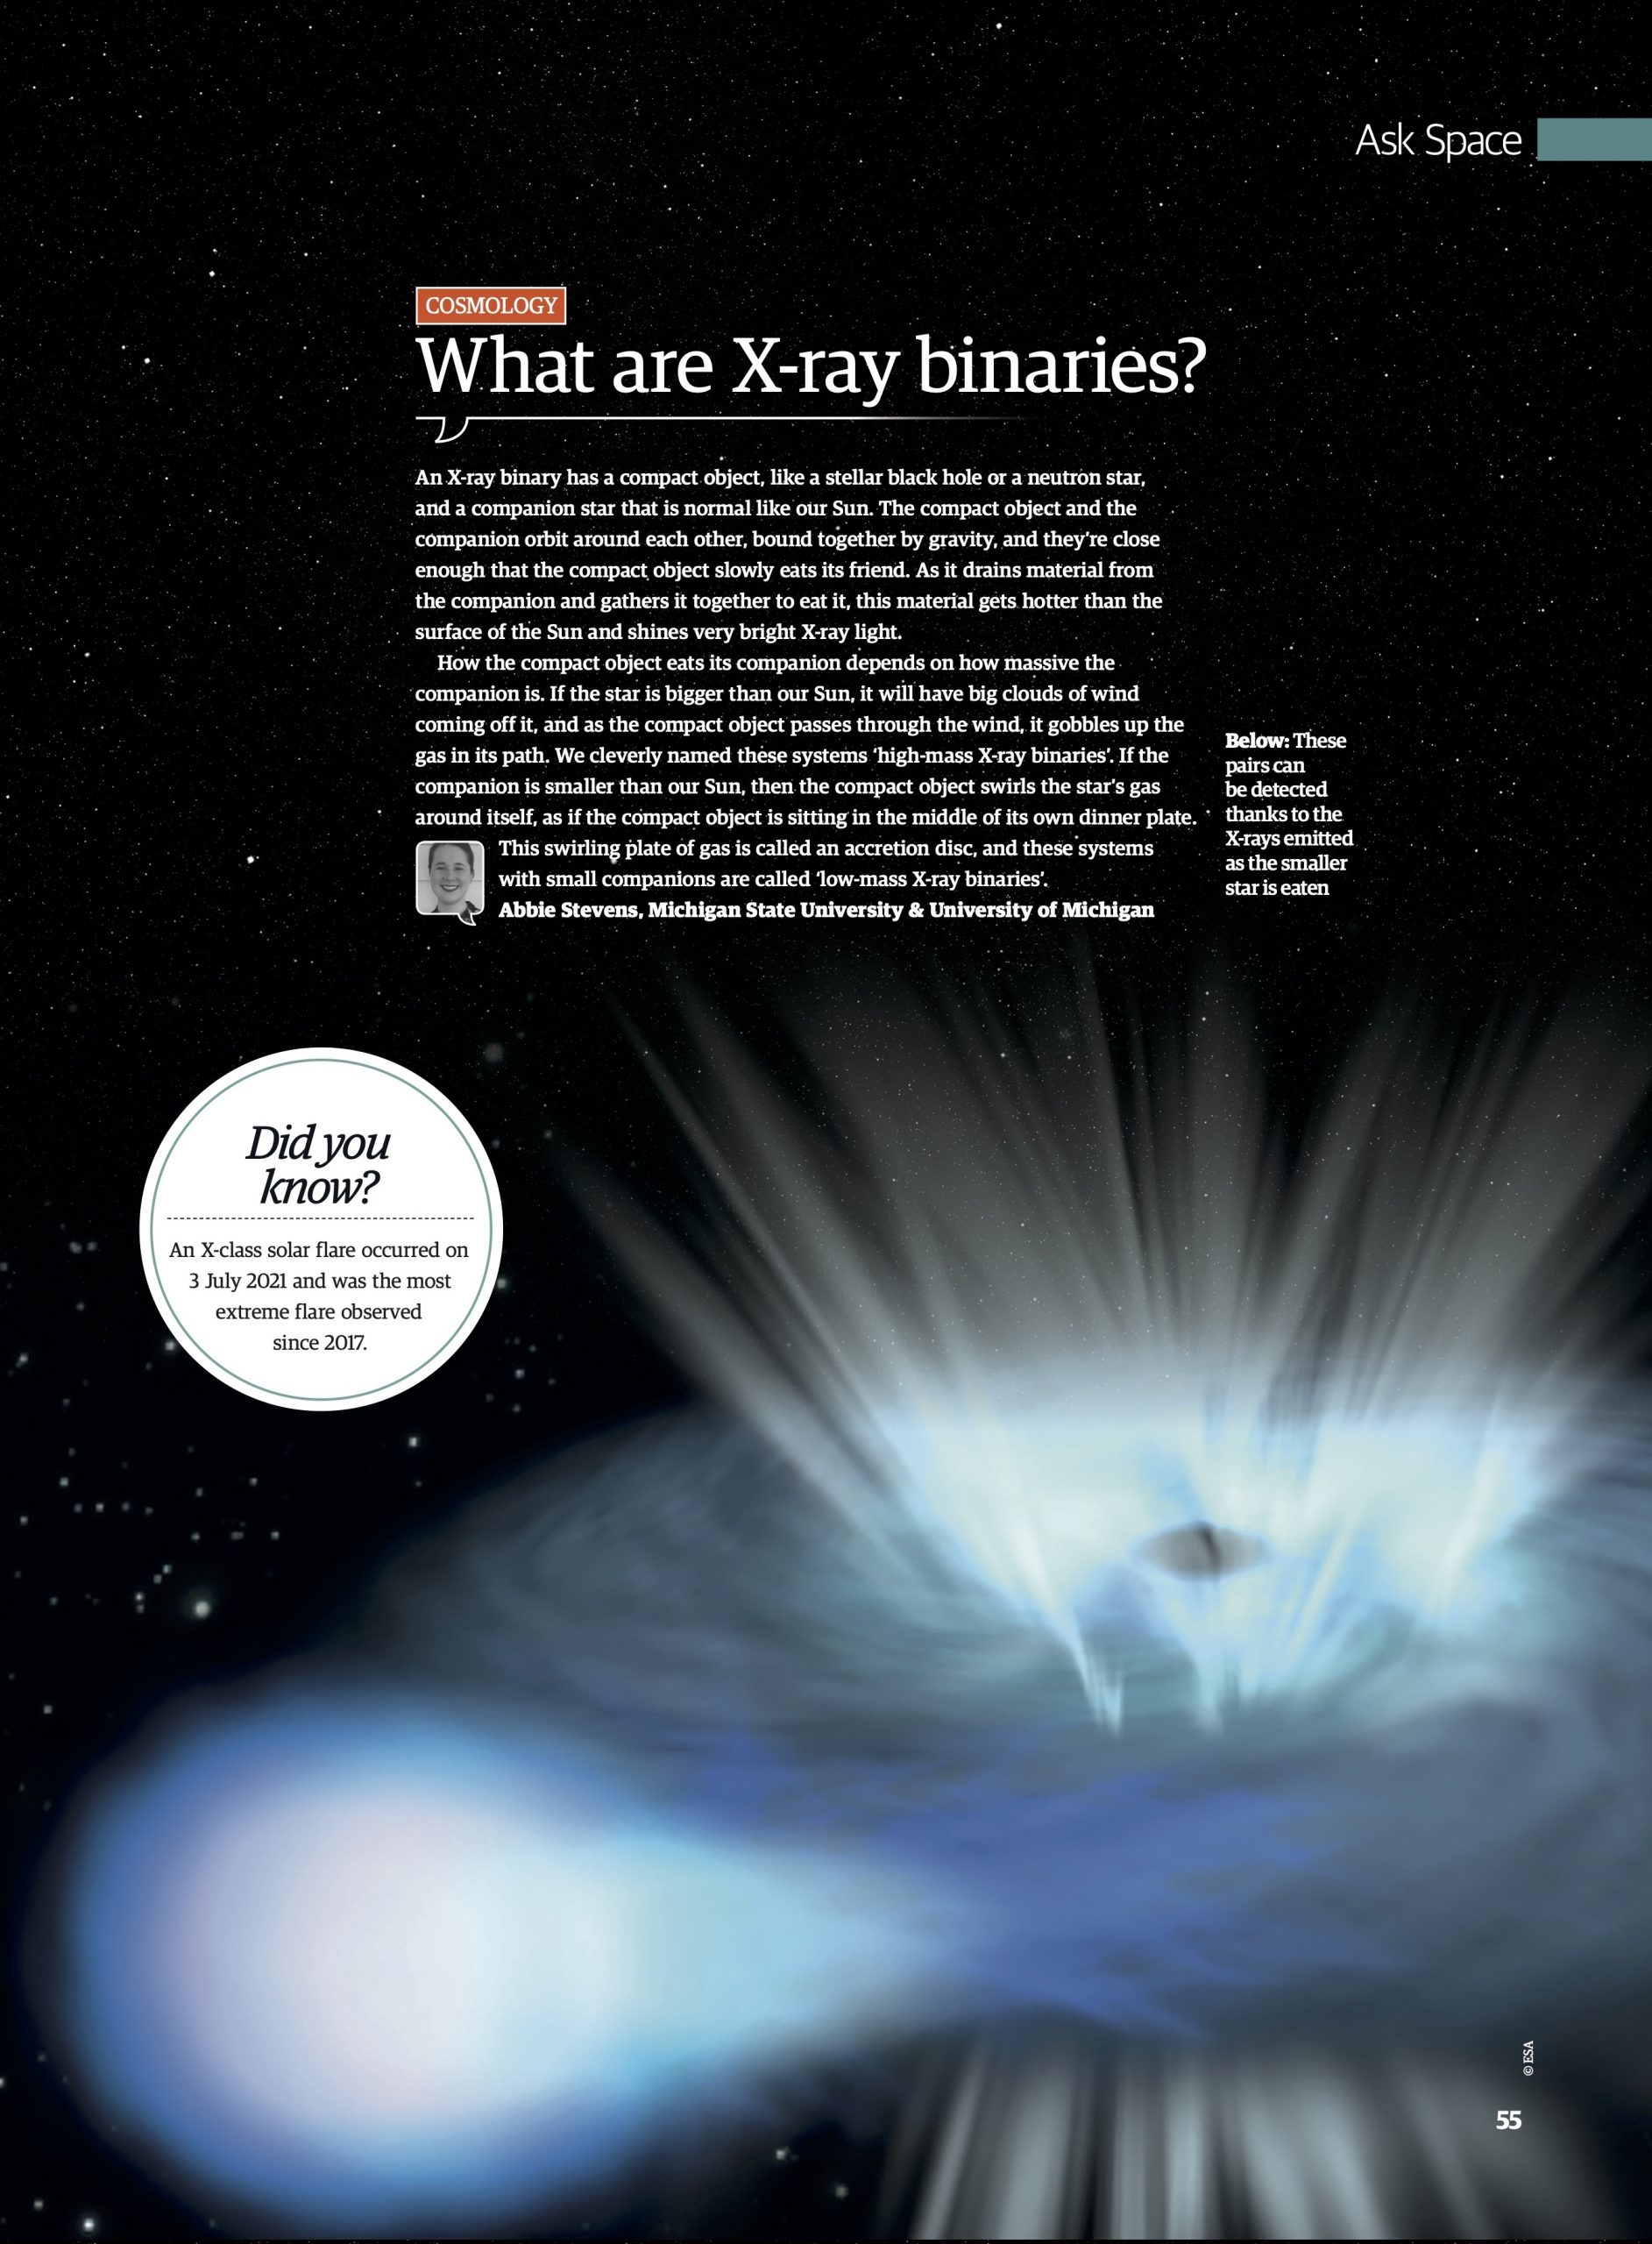 Digital magazine page with text overlaying a picture of a low-mass X-ray binary. Transcript in text on blogpost page. Caption: These pairs can be detected thanks to the X-rays emitted as the smaller star is eaten. Did you know? An X-class solar flare occurred on 2 July 2021 and was the most extreme flare observed since 2017.